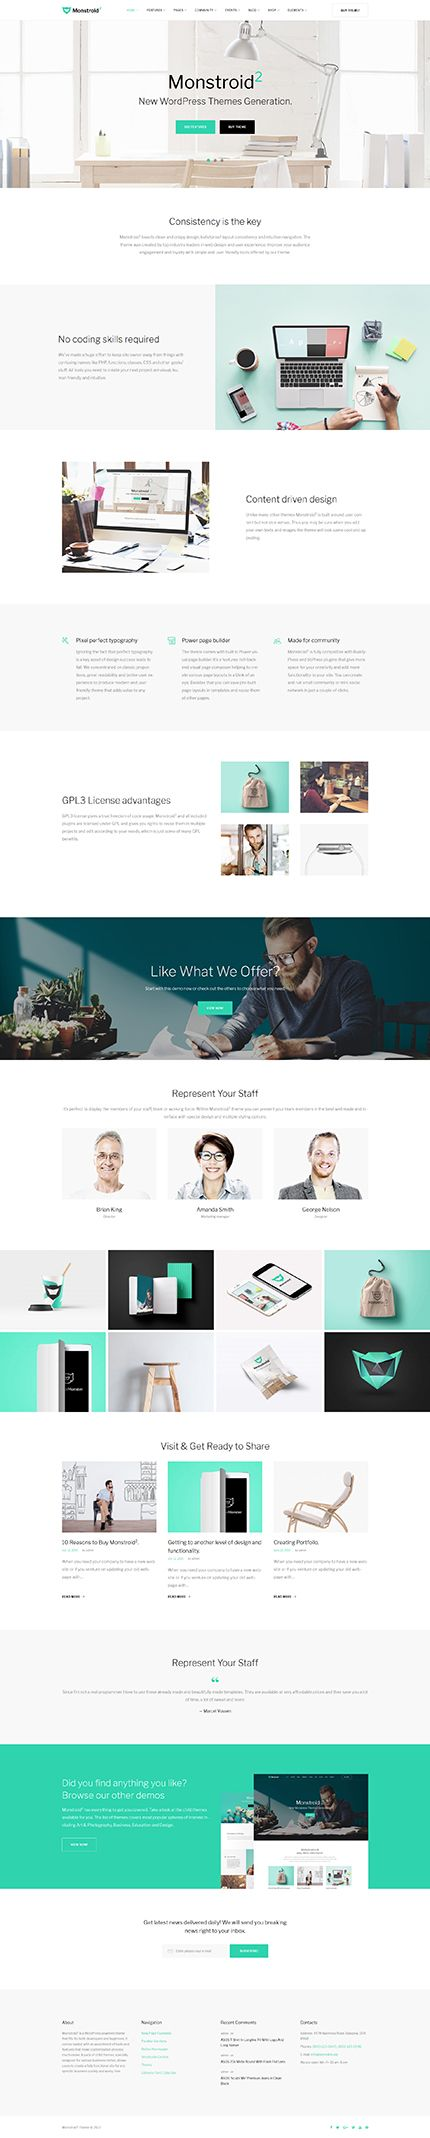 Template 62222 - Monstroid2 Multipurpose WordPress Theme